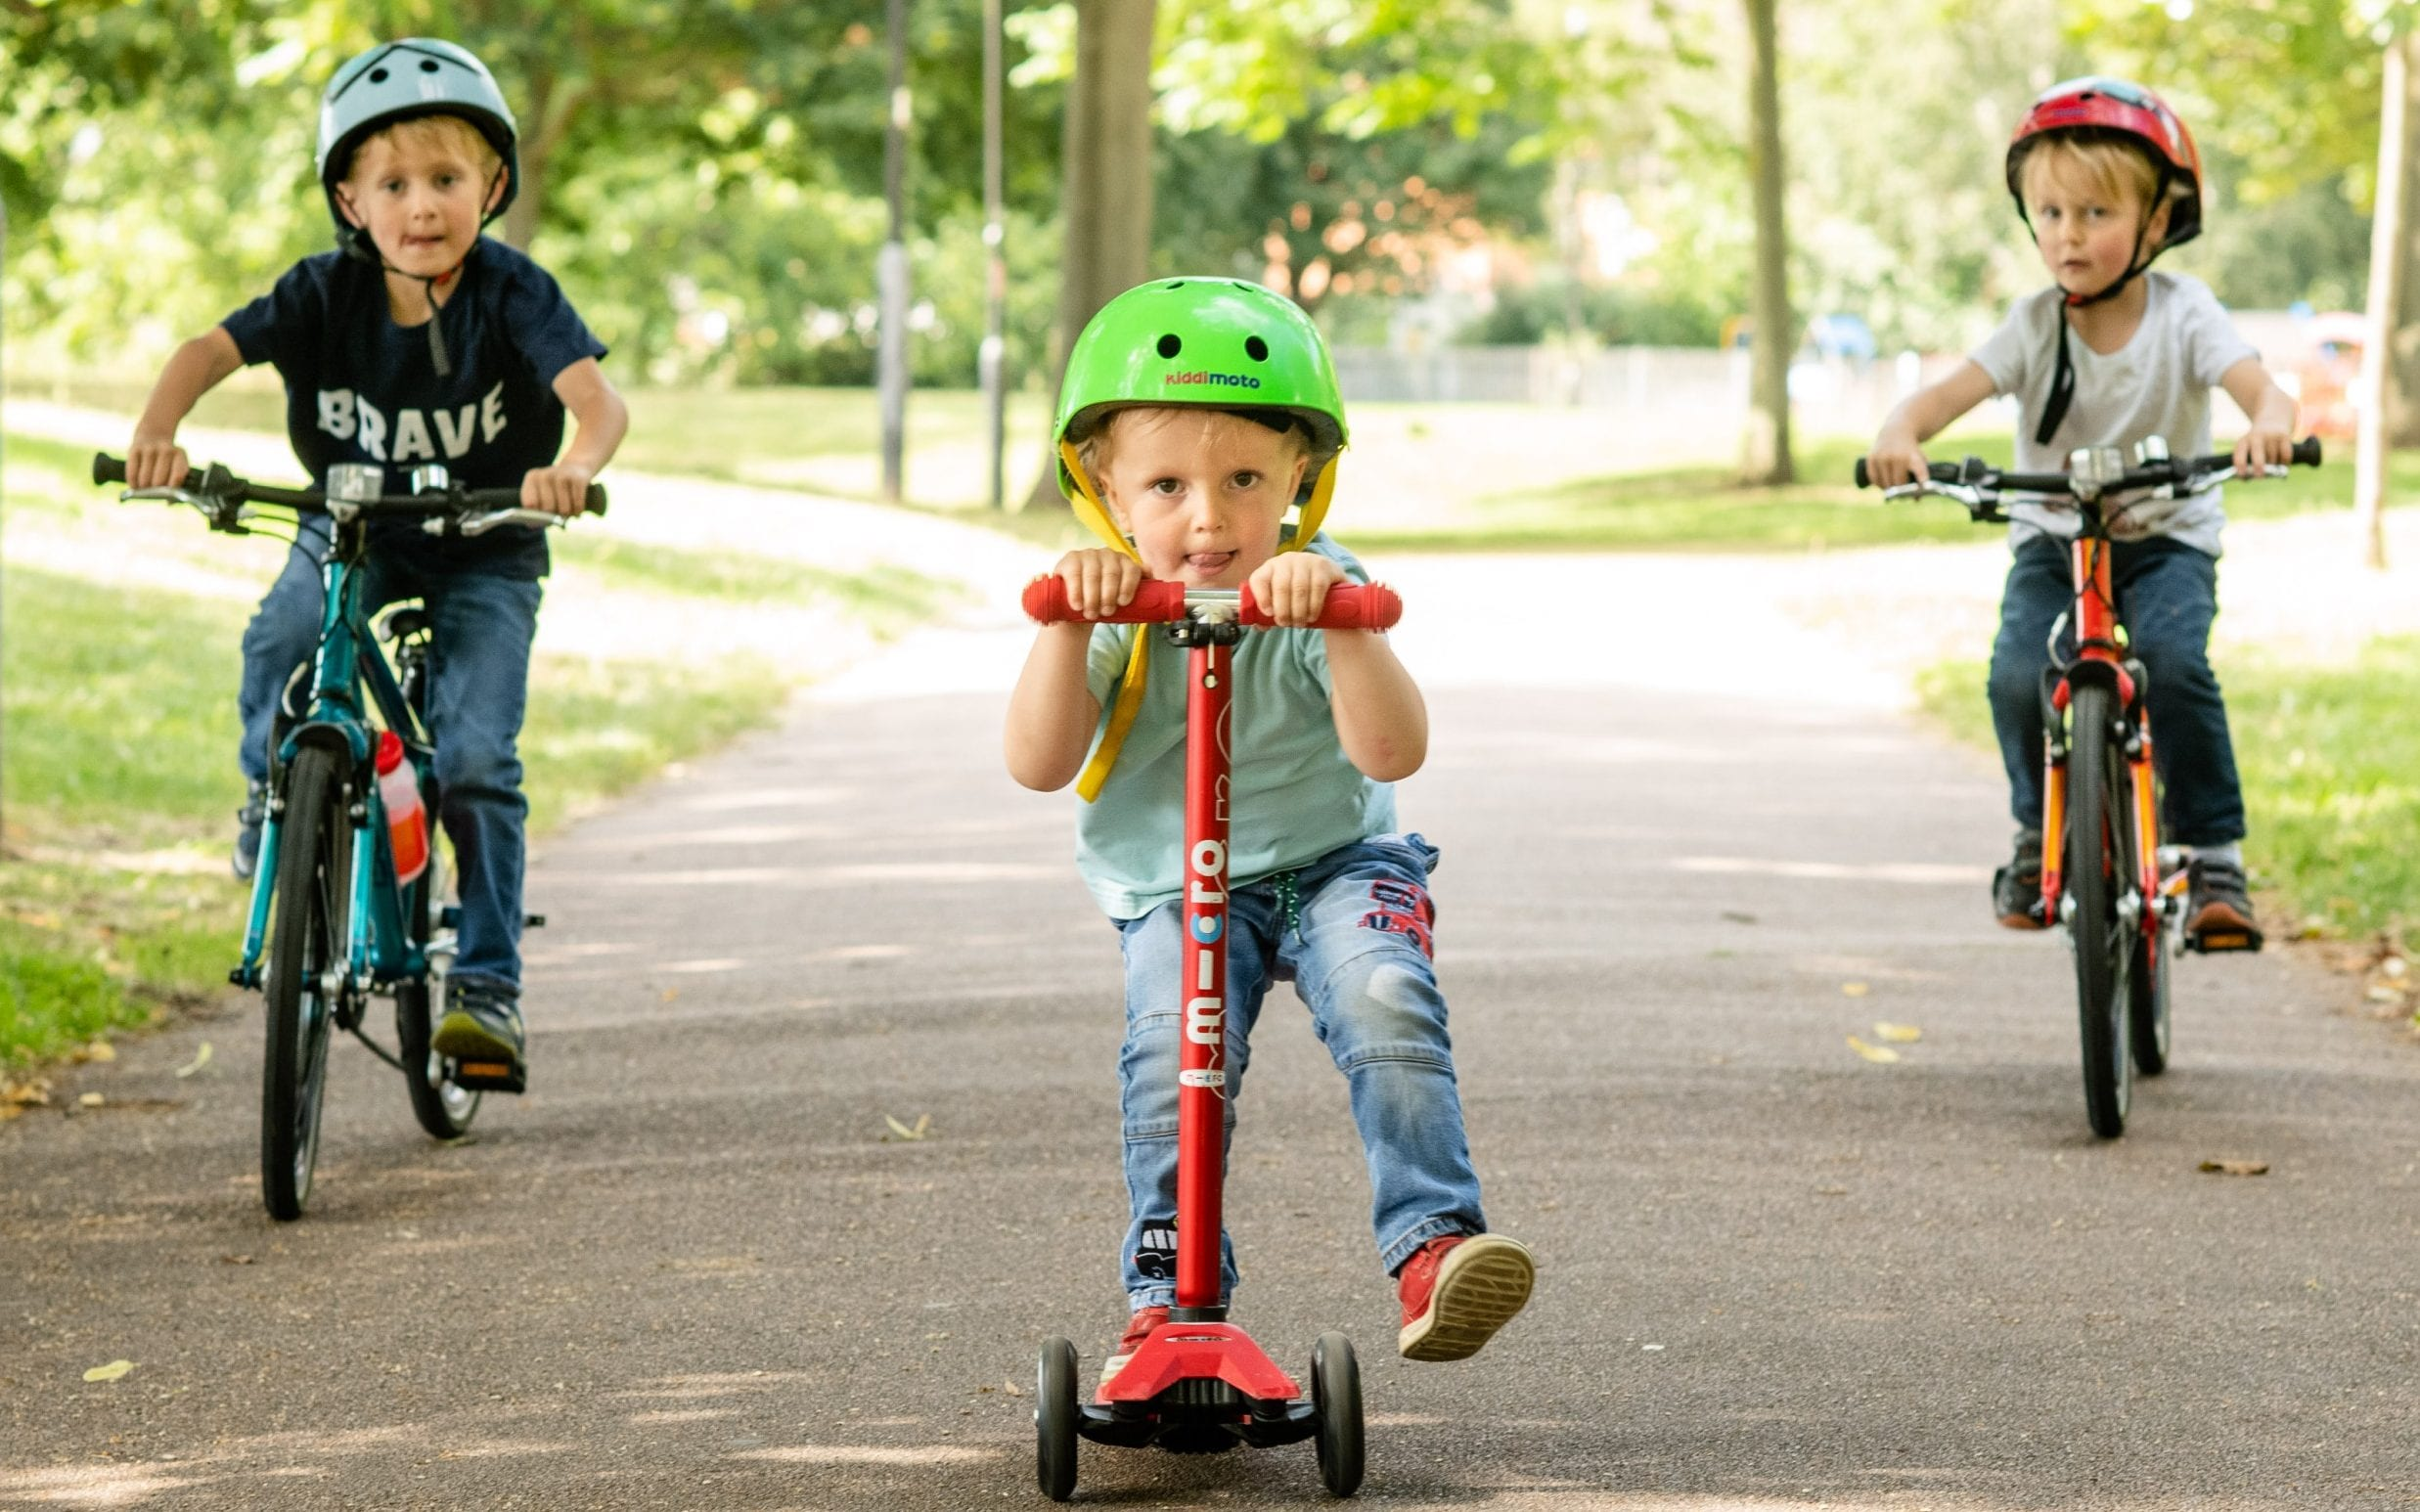 Children riding bikes and scooters in a park